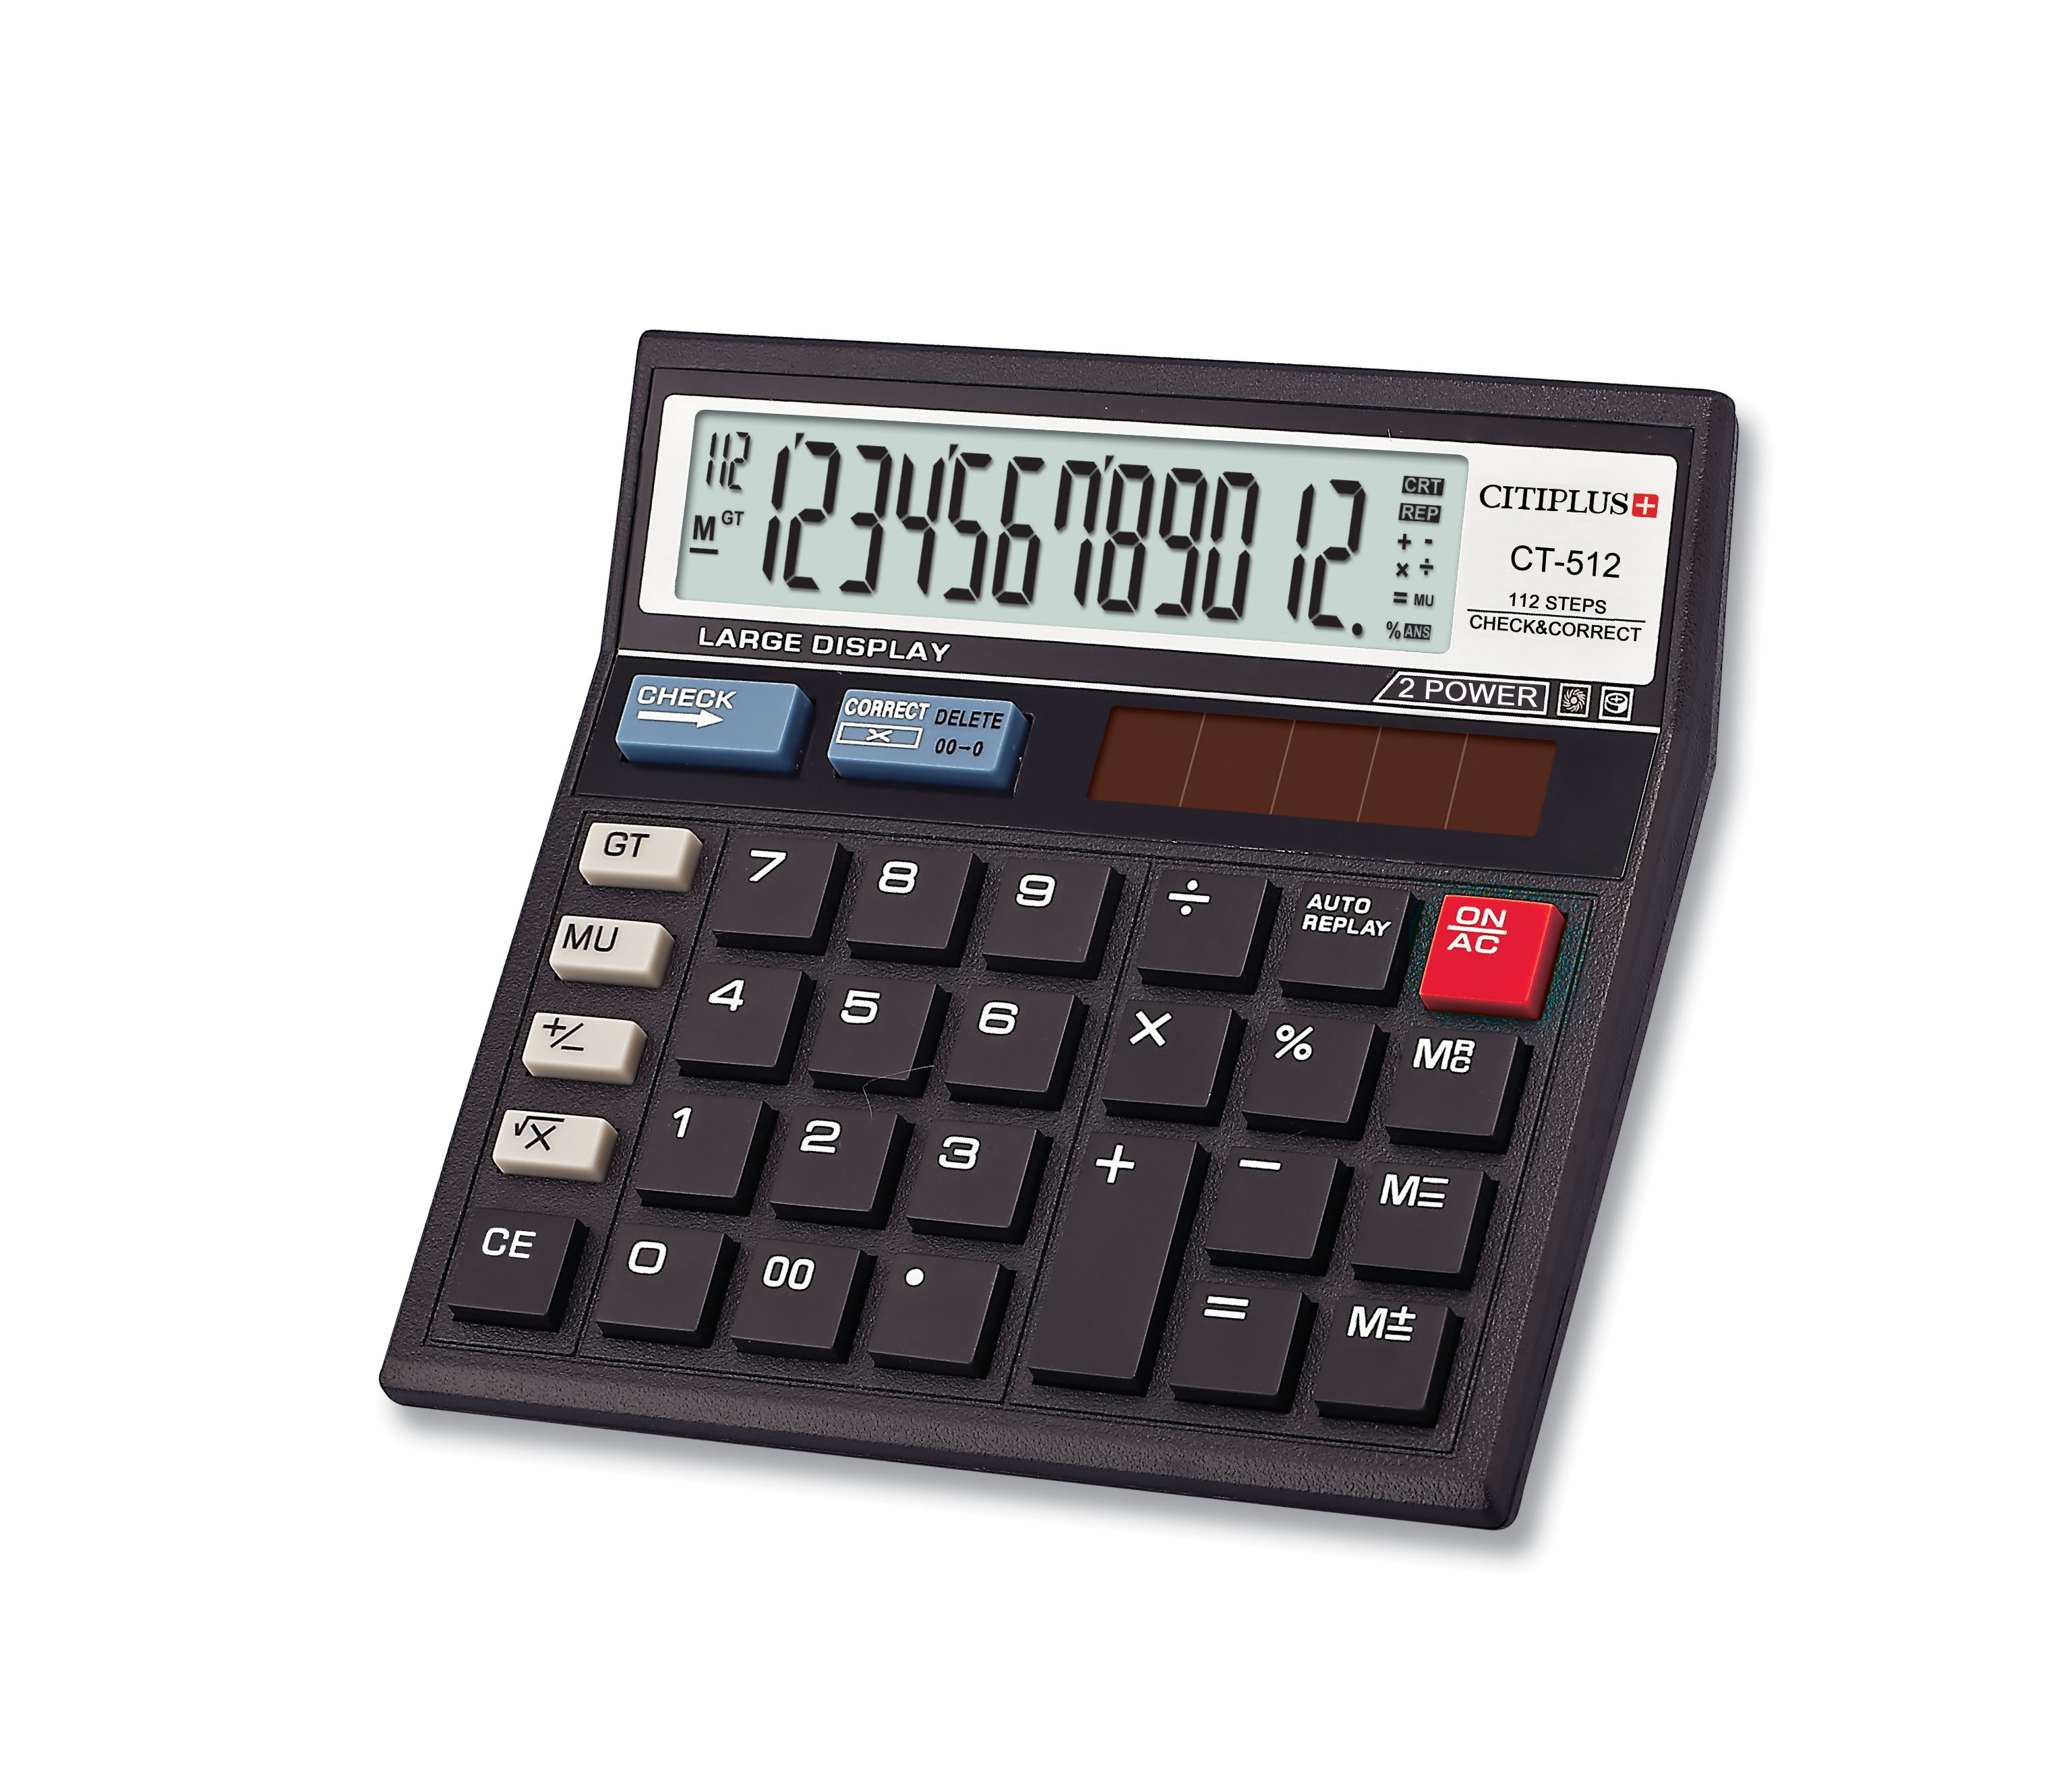 CITIPLUS ct 512 calculator,12 Digit Electronic Cheap Calculator Popular in India